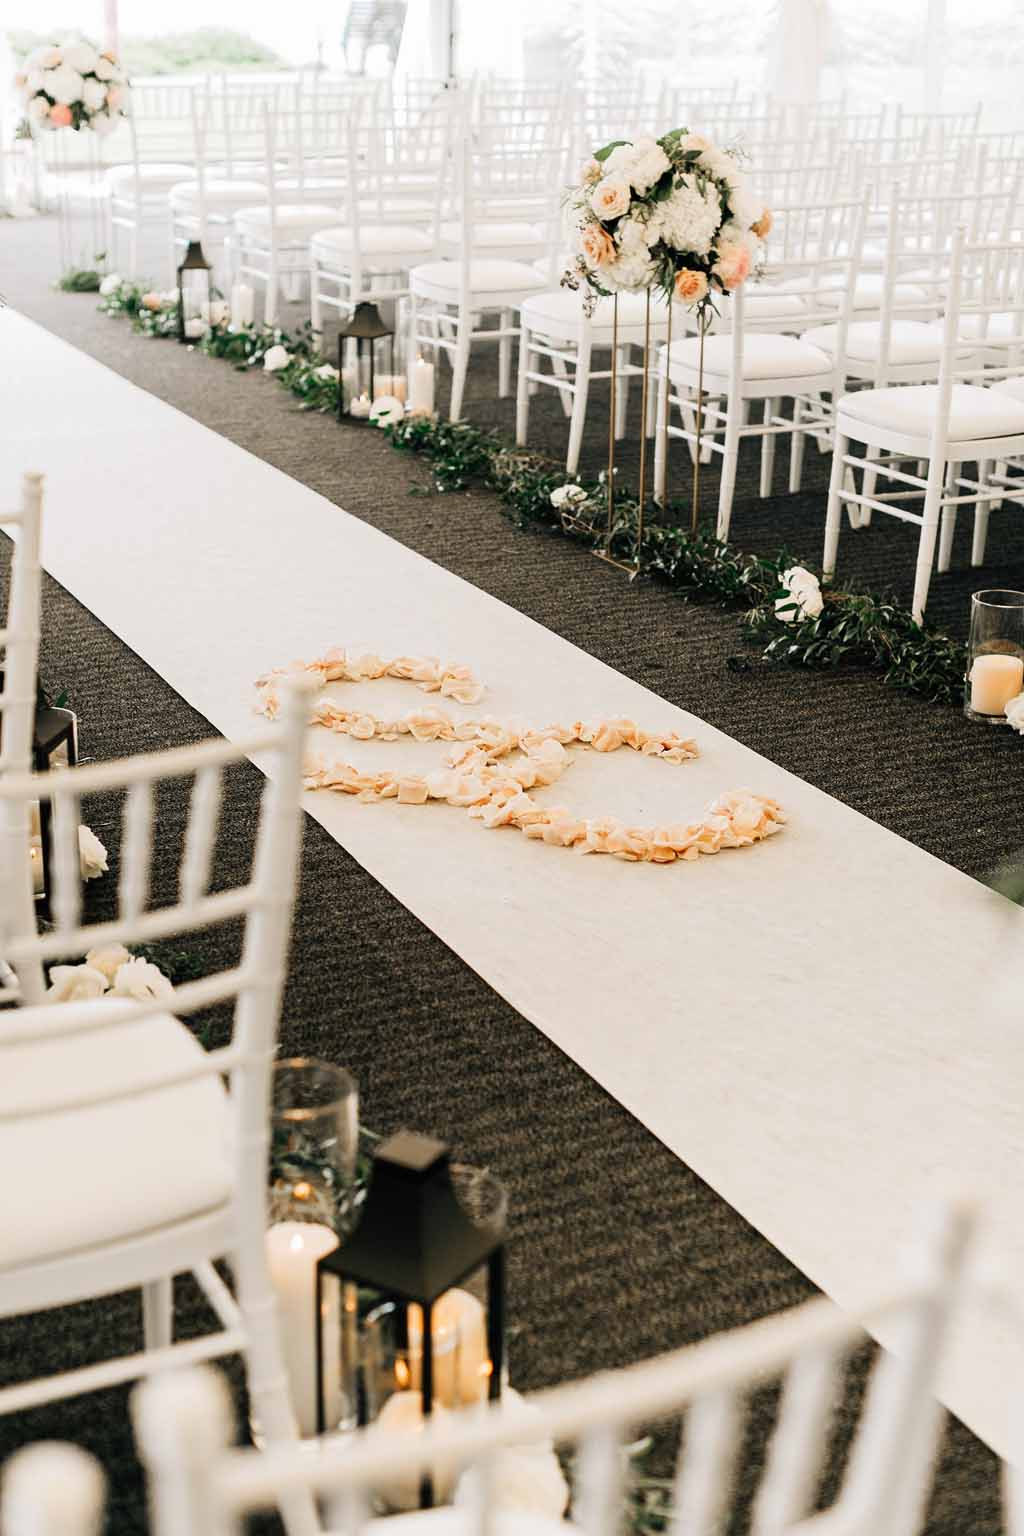 Initials out of rose petals on white aisle runner for Lake Washington Wedding